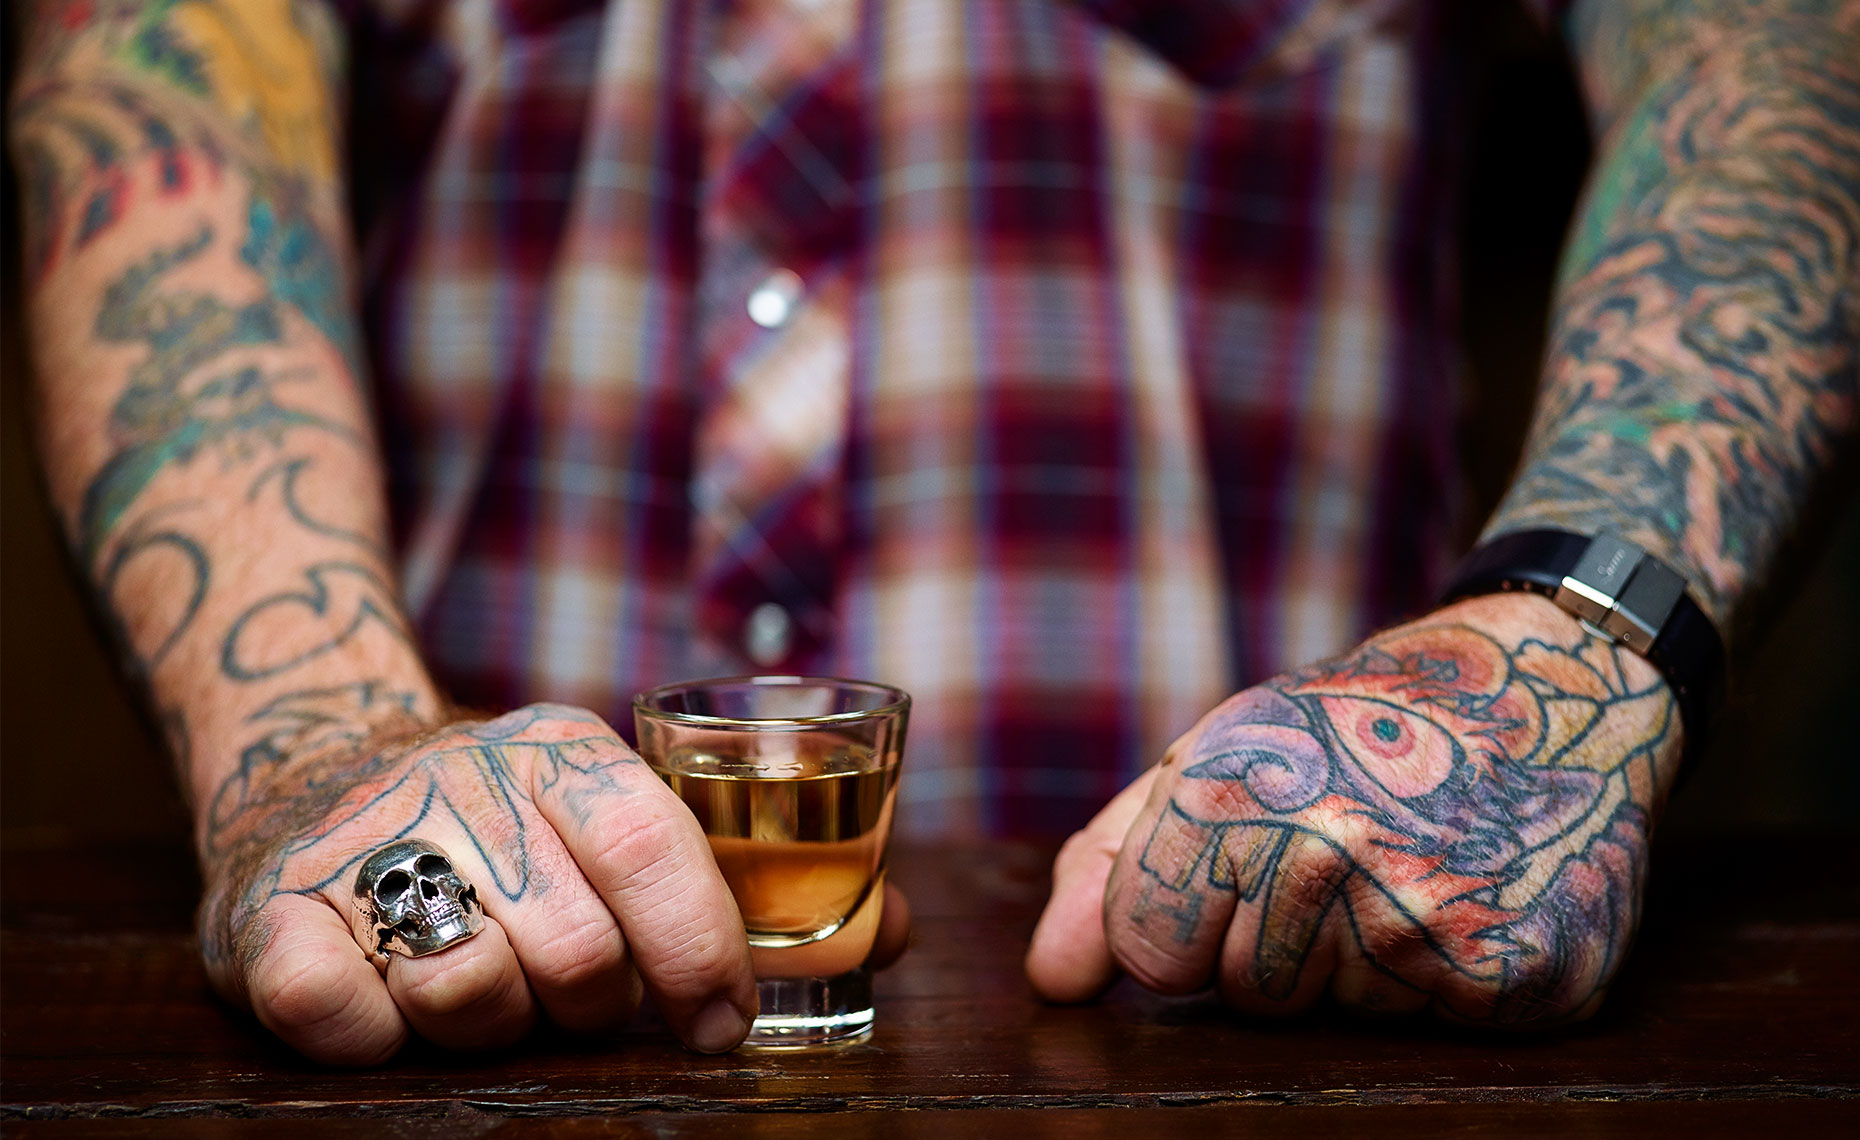 A colorful display of tattoos serving you a shot of Mezcal